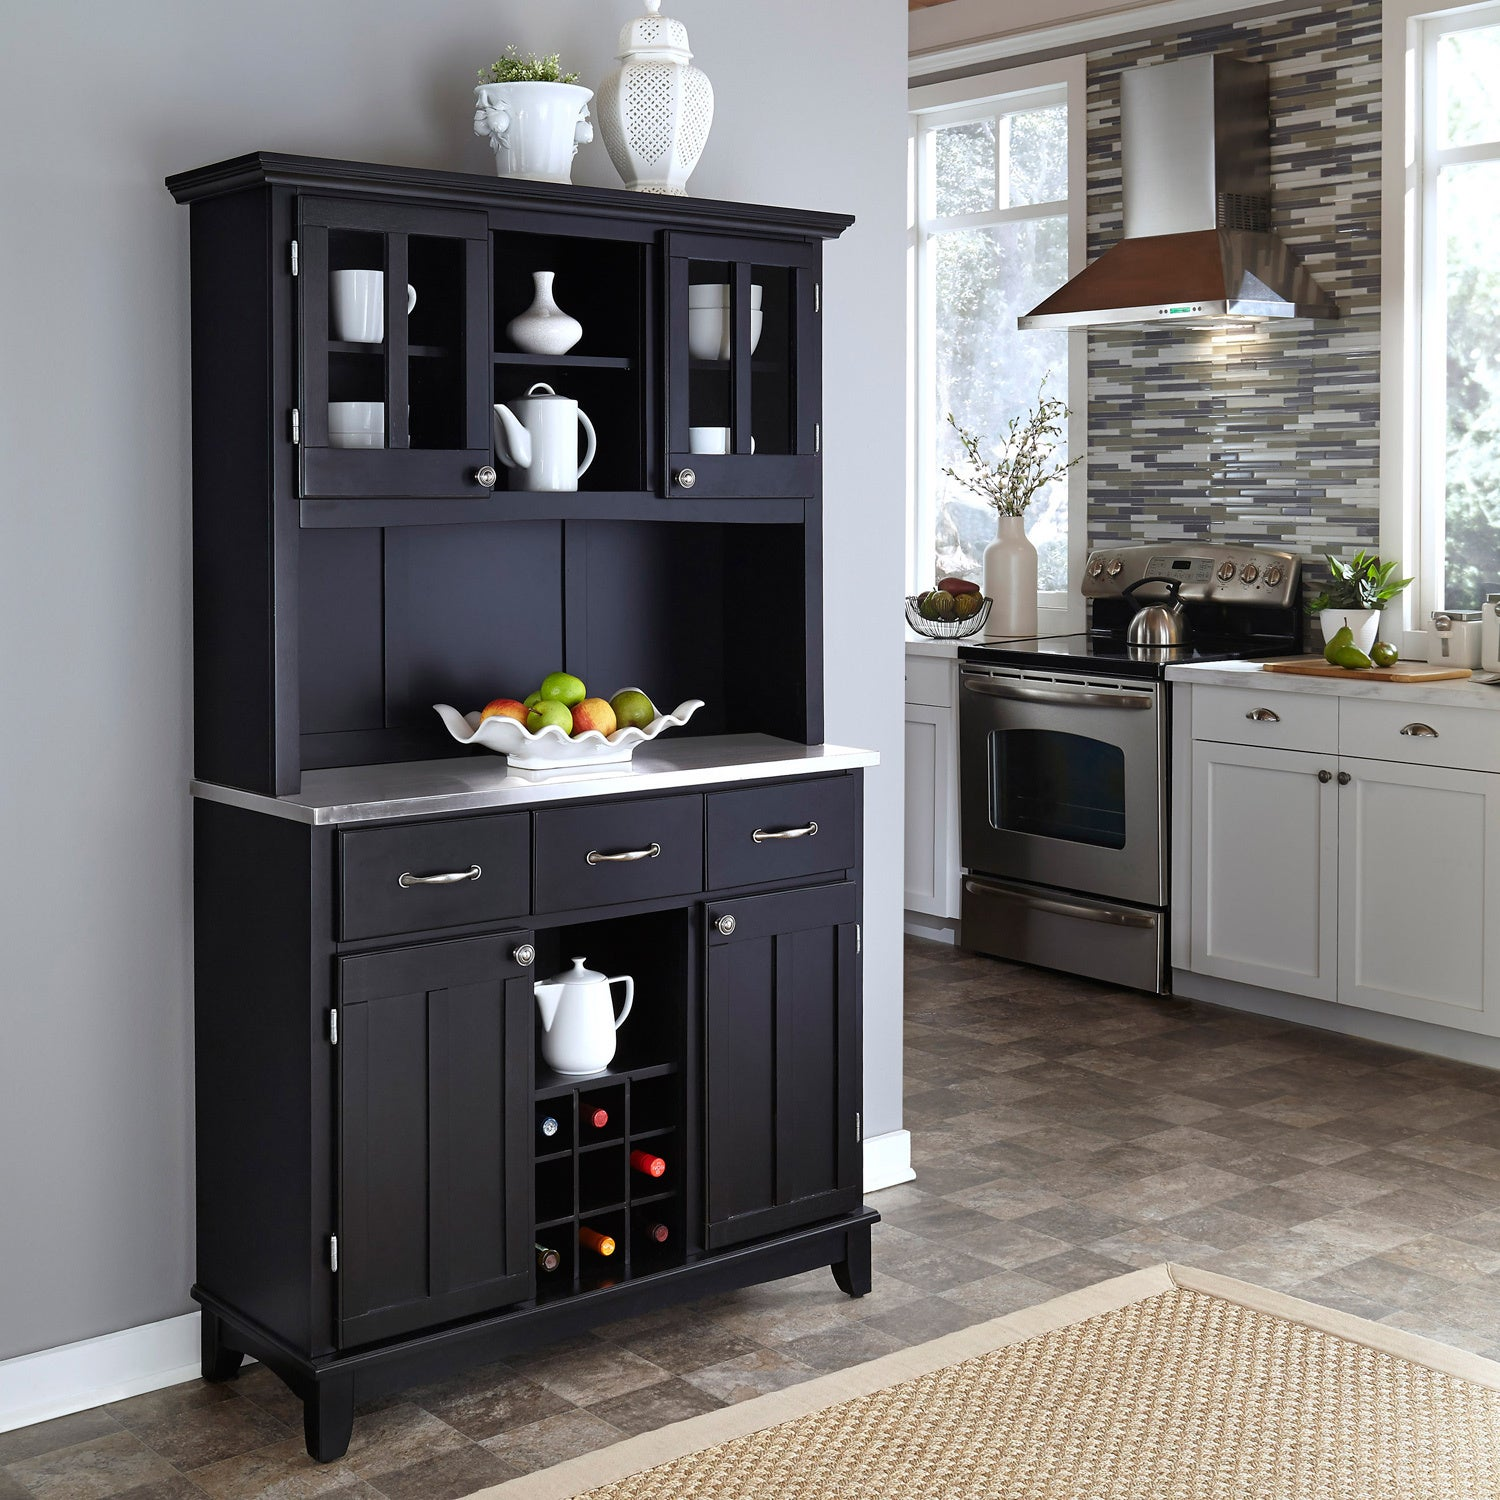 Picture of: Shop Black Friday Deals On Black Hutch Buffet With Stainless Top By Home Styles Overstock 6548355